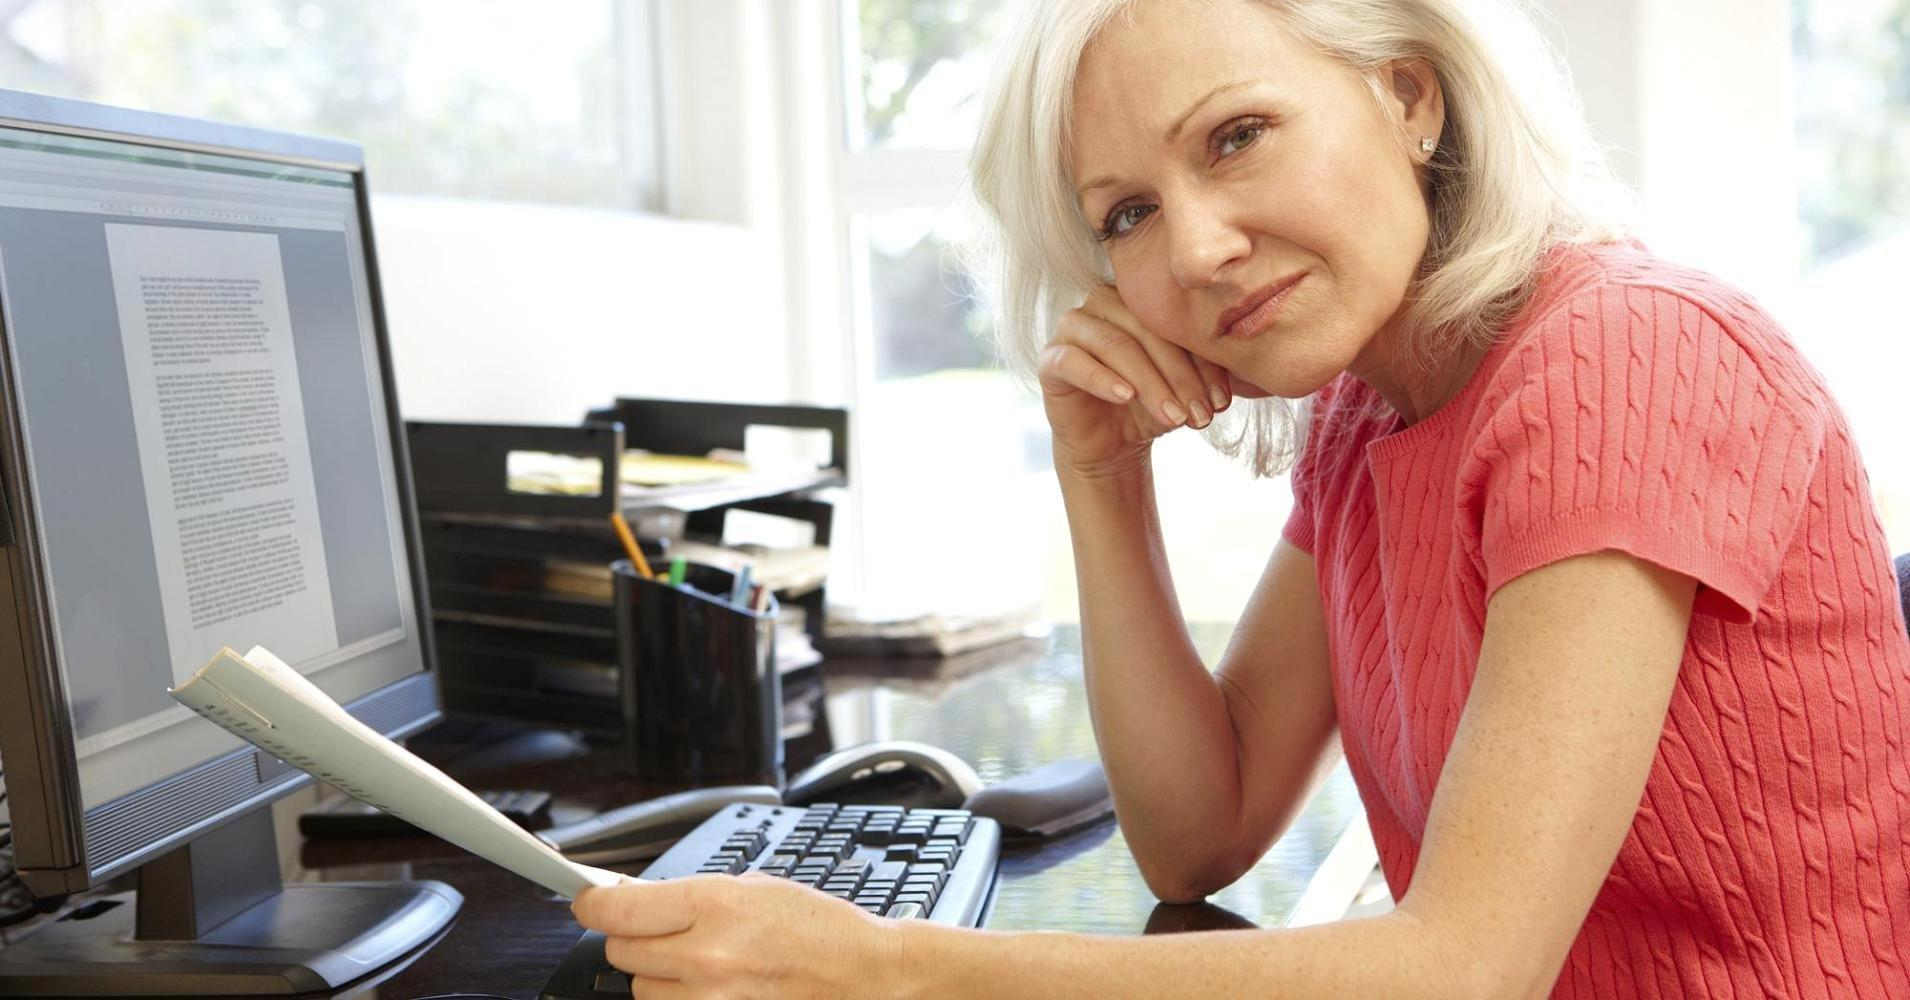 Just 15% of women say they save enough to retire